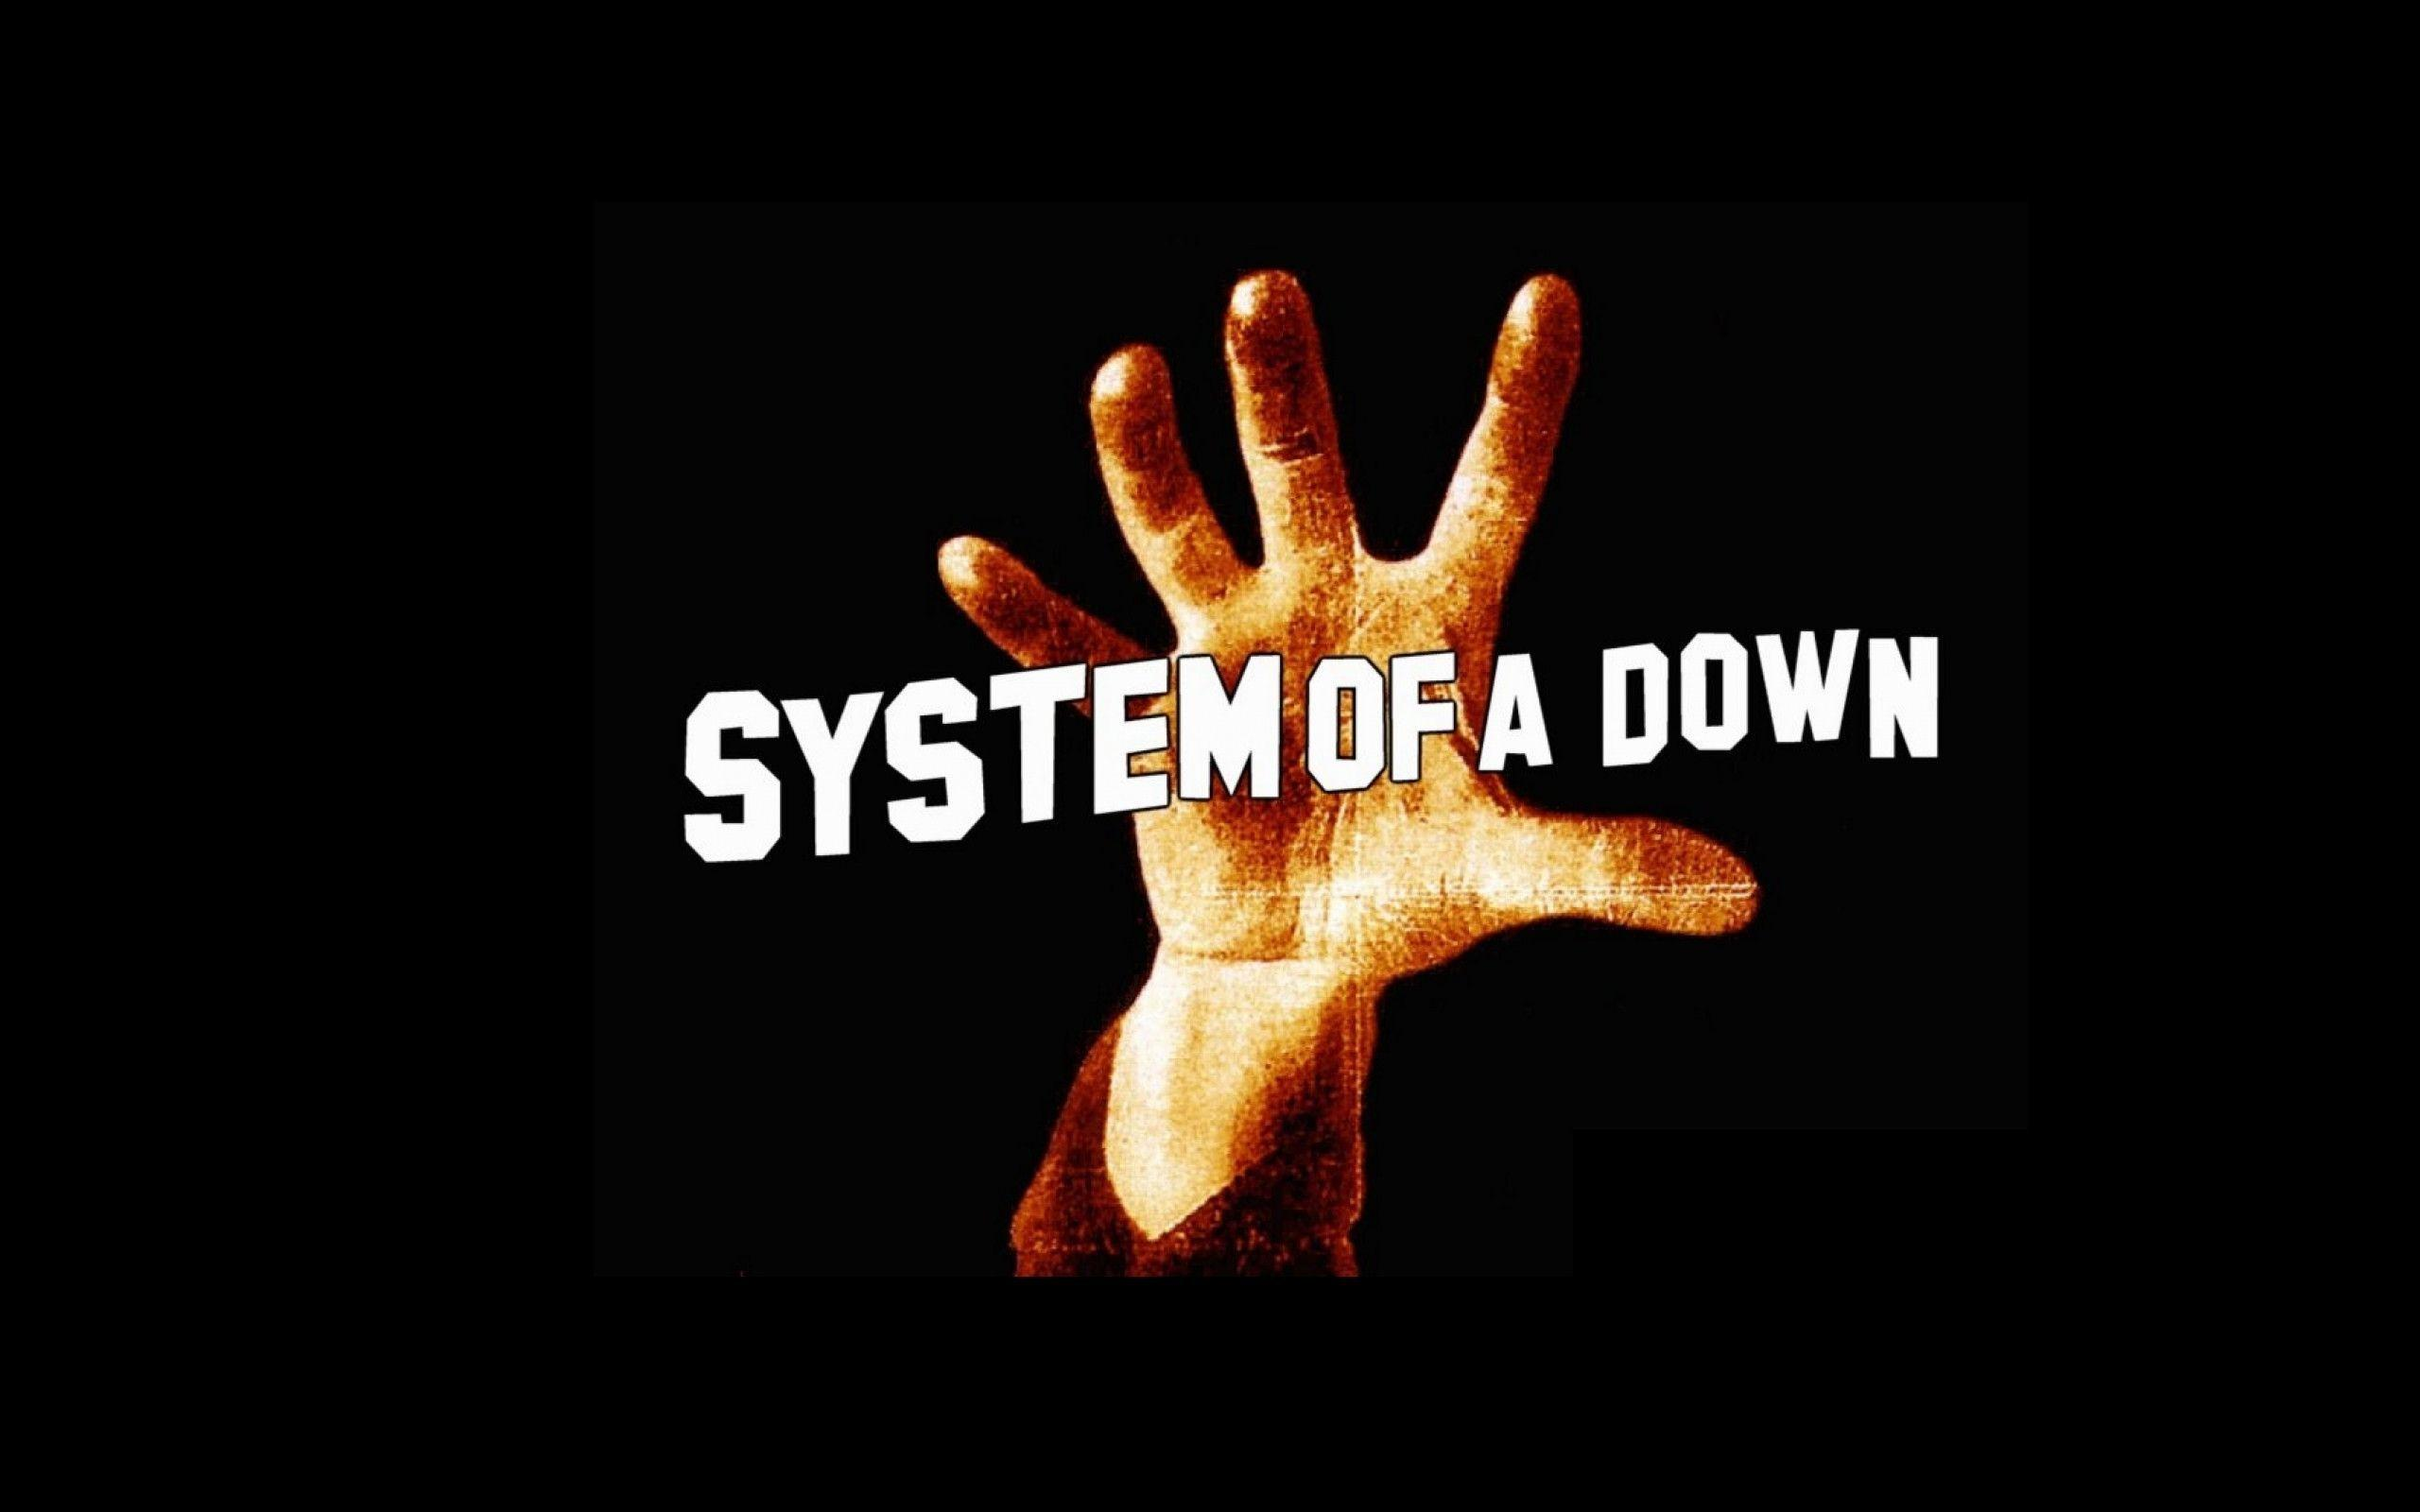 System Of A Down Wallpapers 2560x1600